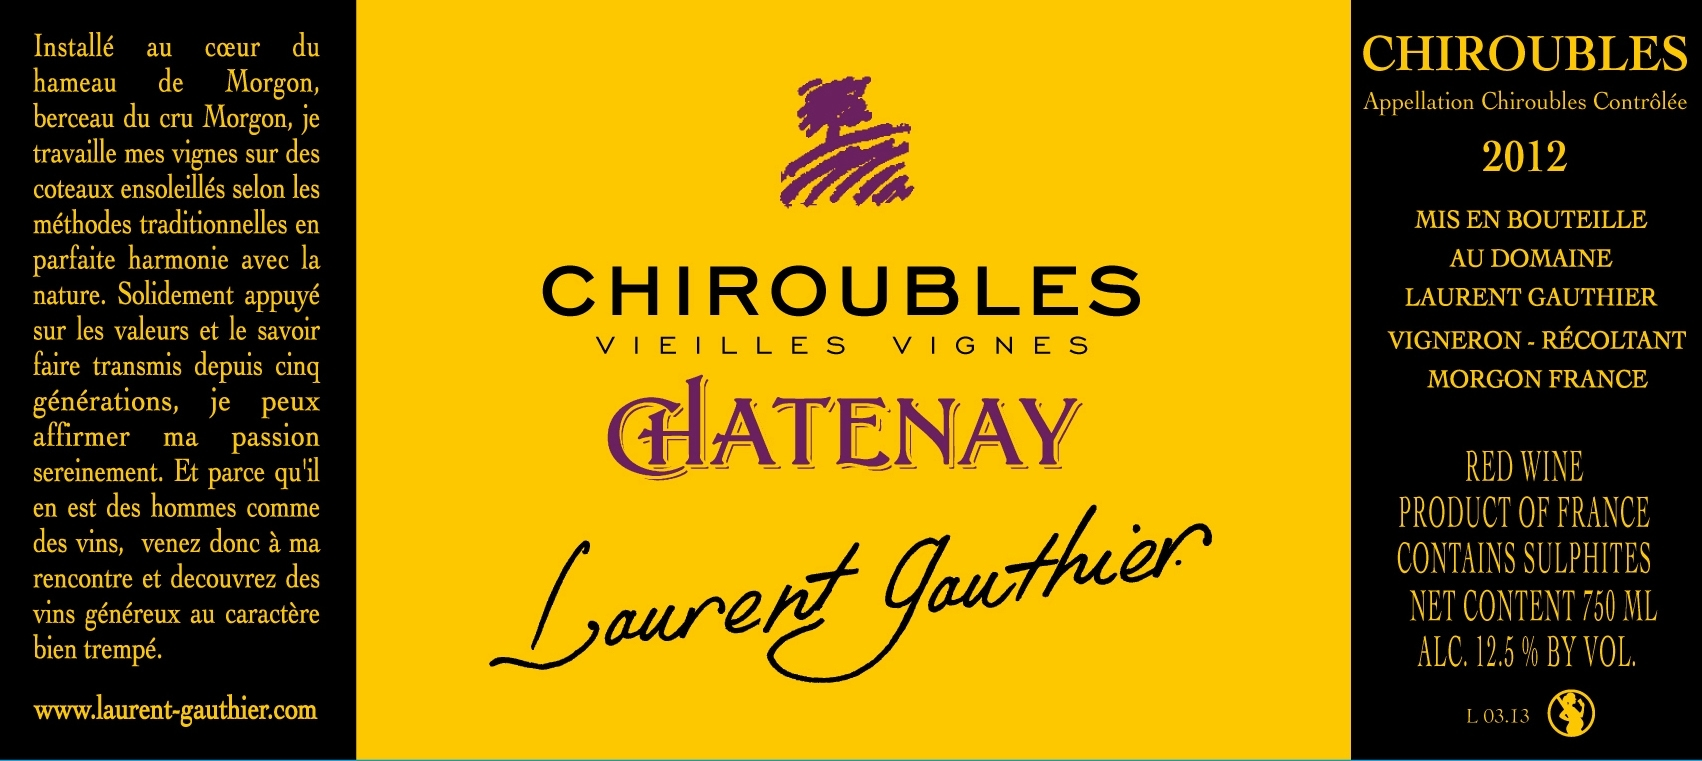 BEAUJOLAIS CHIROUBLES CHATENAY